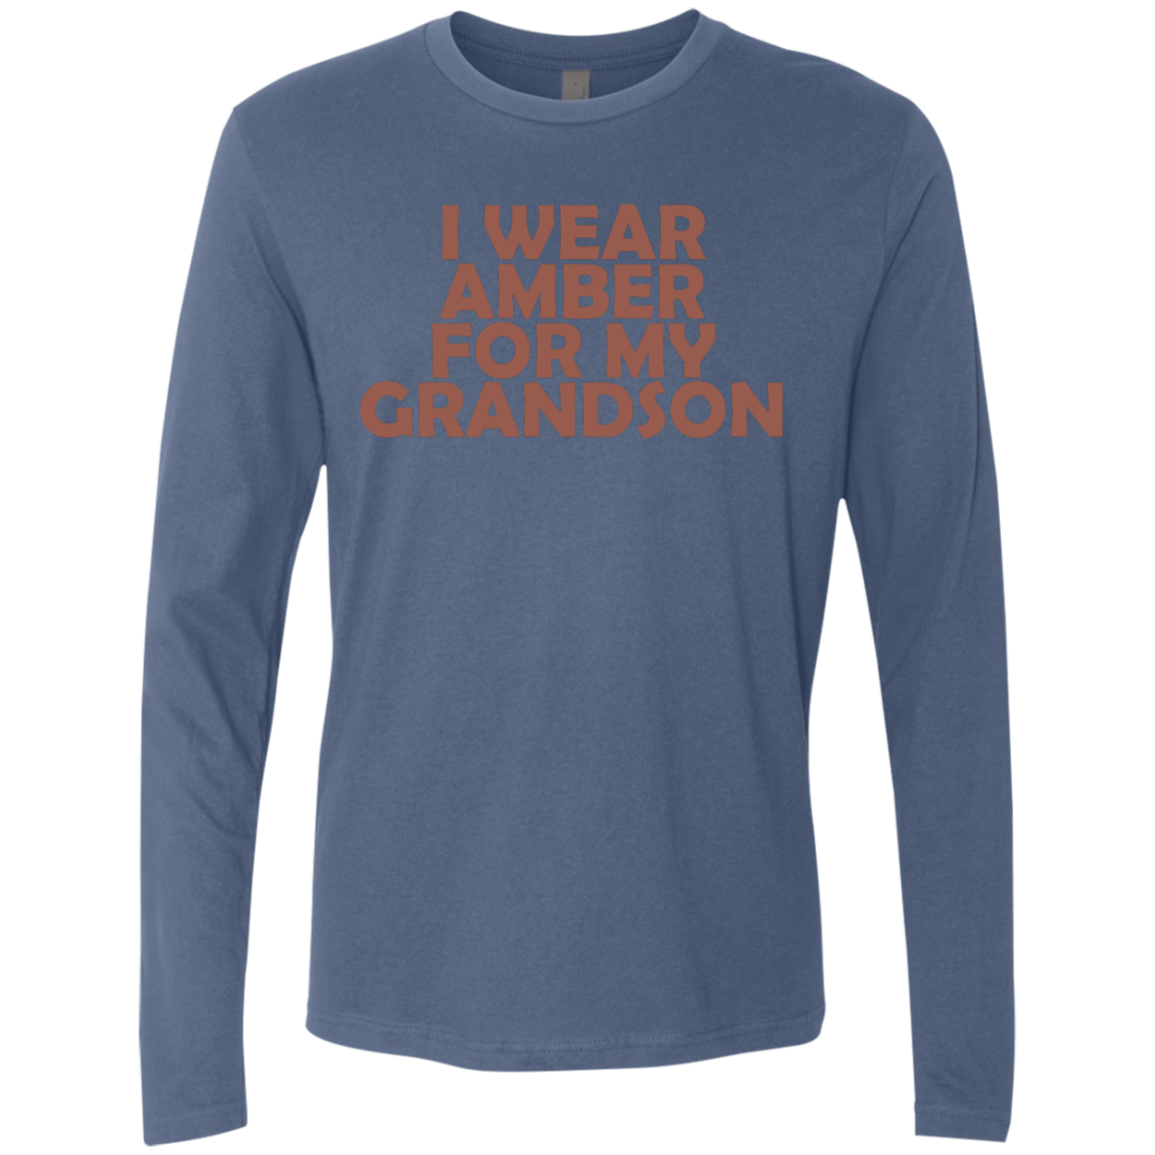 I Wear Amber For My Grandson Men's Long Sleeve Tee